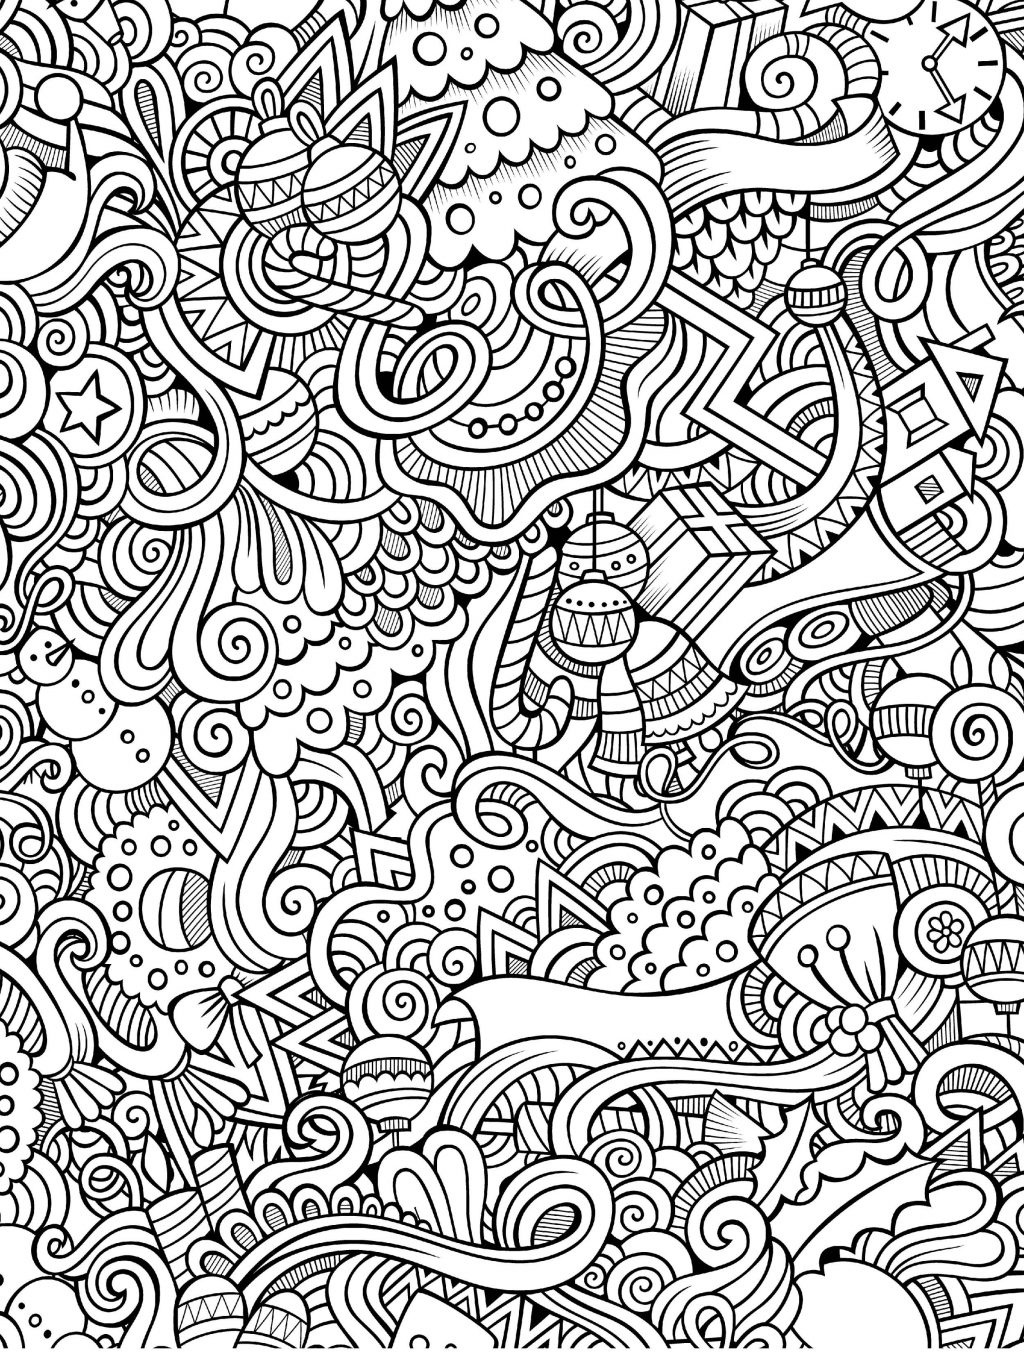 Coloring Page ~ Free Printable Trippy Colorings Wuming Me Marvelous - Free Printable Trippy Coloring Pages